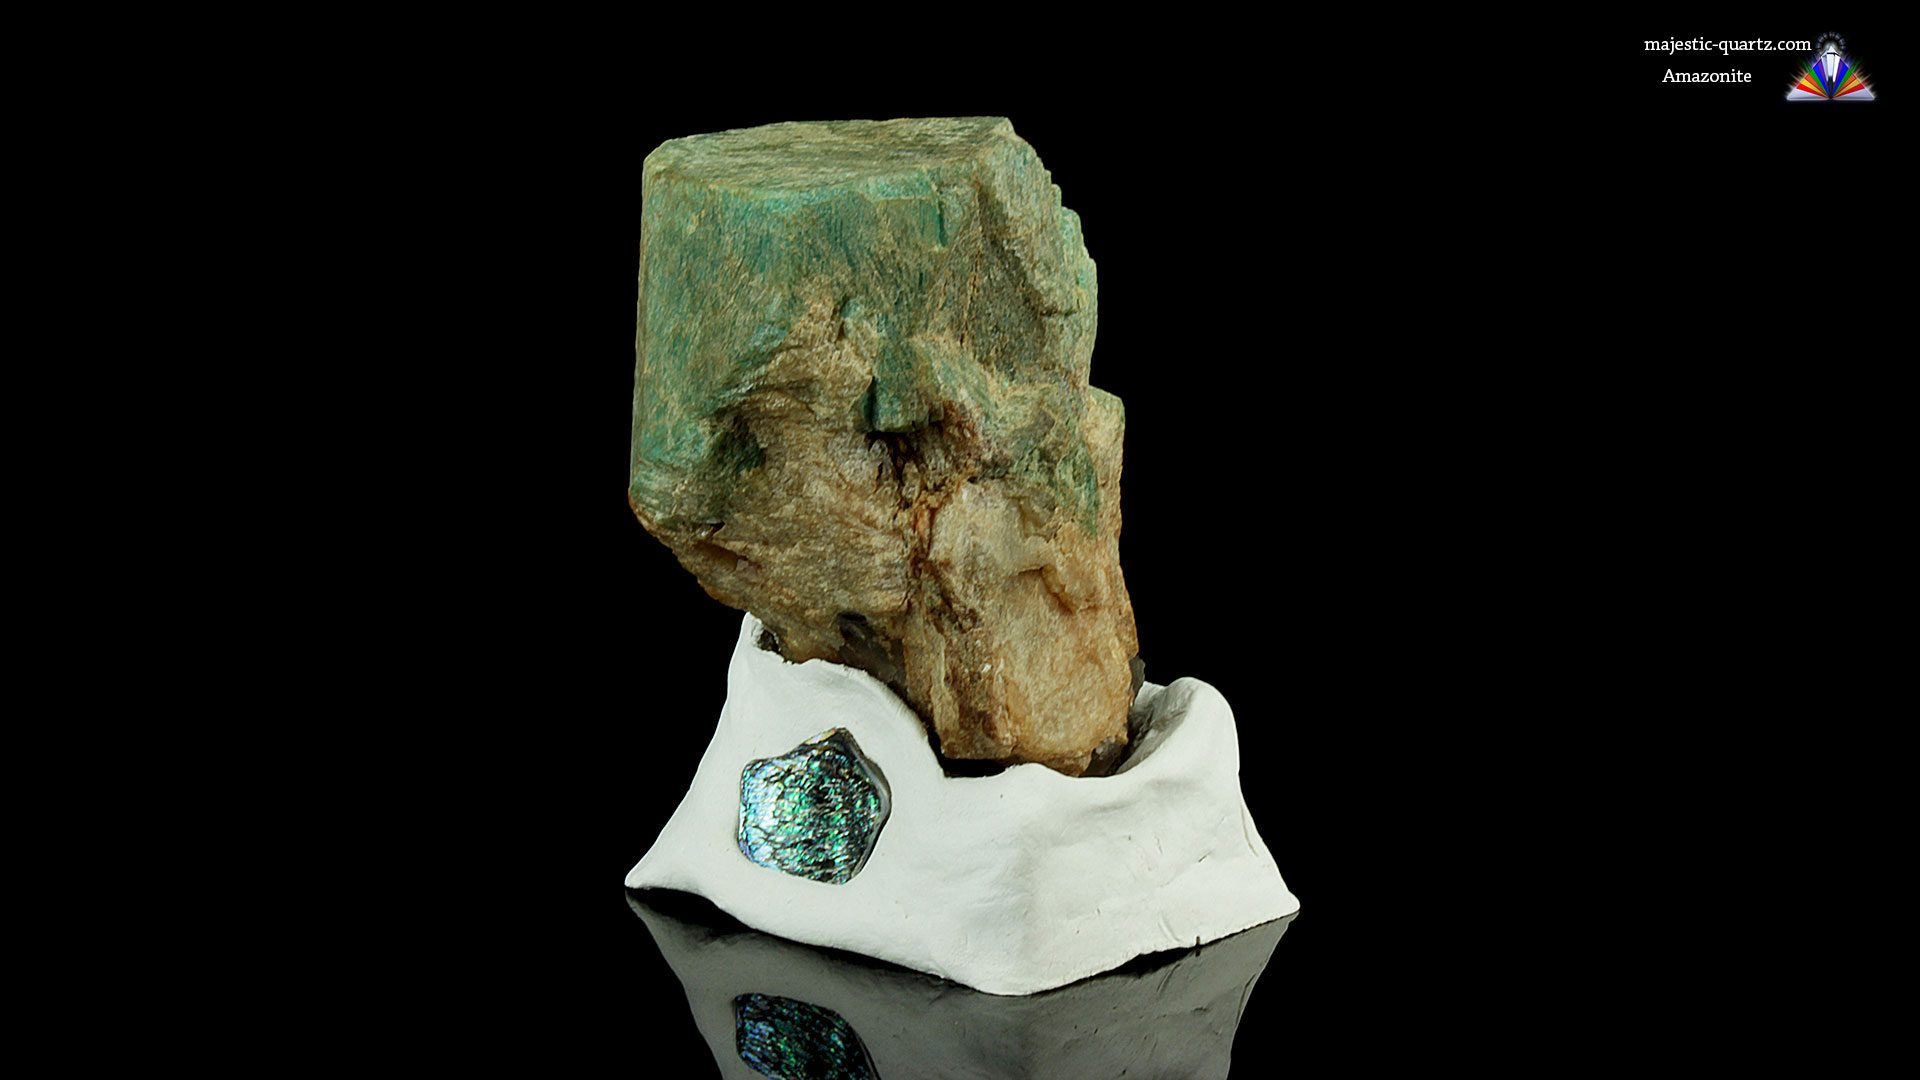 Terminated Amazonite Crystal Specimen - Mineral Specimen Properties and Meaning